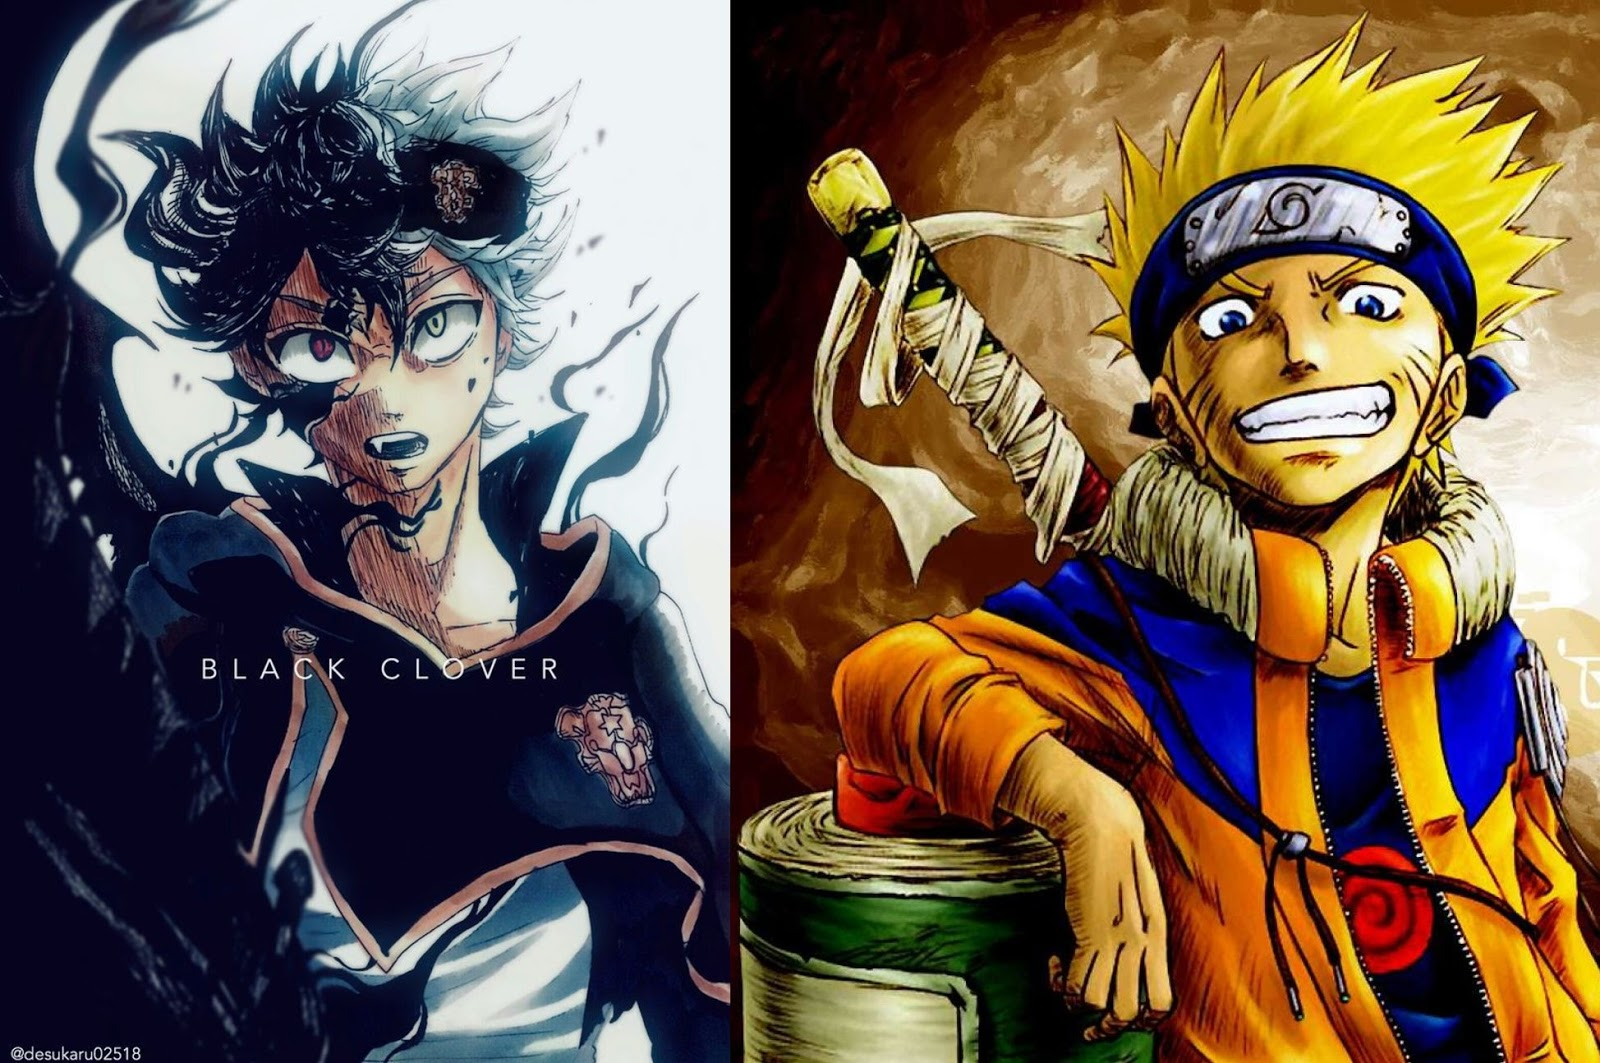 Similarity Between Naruto And Black Clover Anime Su etsy trovi 5 julius novachrono in vendita, e. similarity between naruto and black